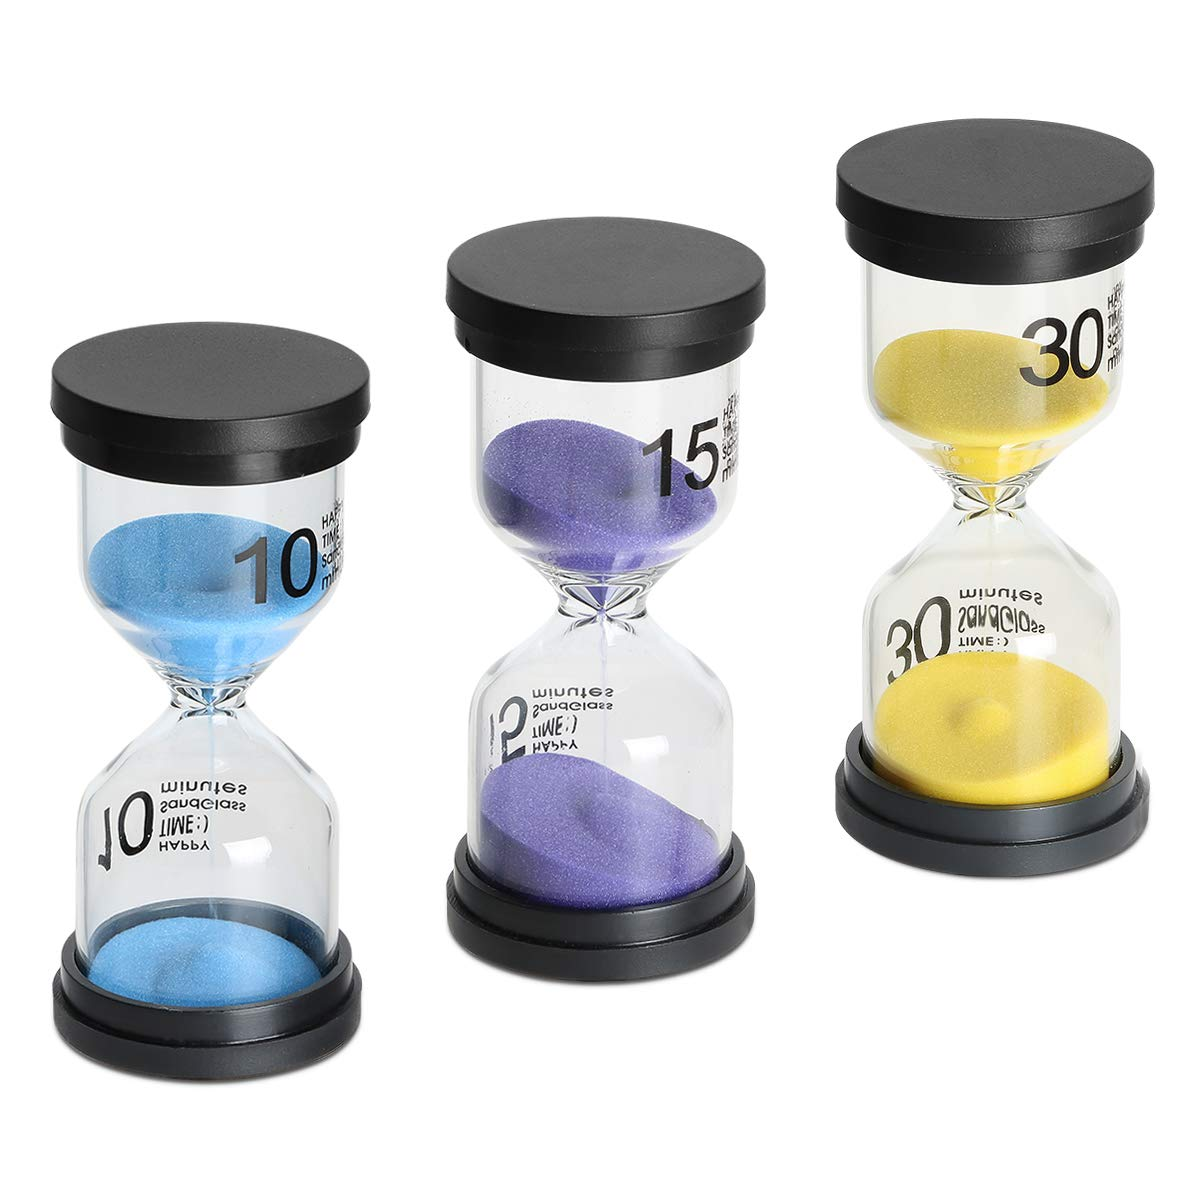 Sand Timer 3 Pack,Sageme Hourglass Timer Sandglass Hourglass Sand Clock 10/15 / 30 Minutes for Kids, Classroom, Kitchen, Games, Brushing Timer, Home Office Decoration Timers (10/15 / 30 Minutes)